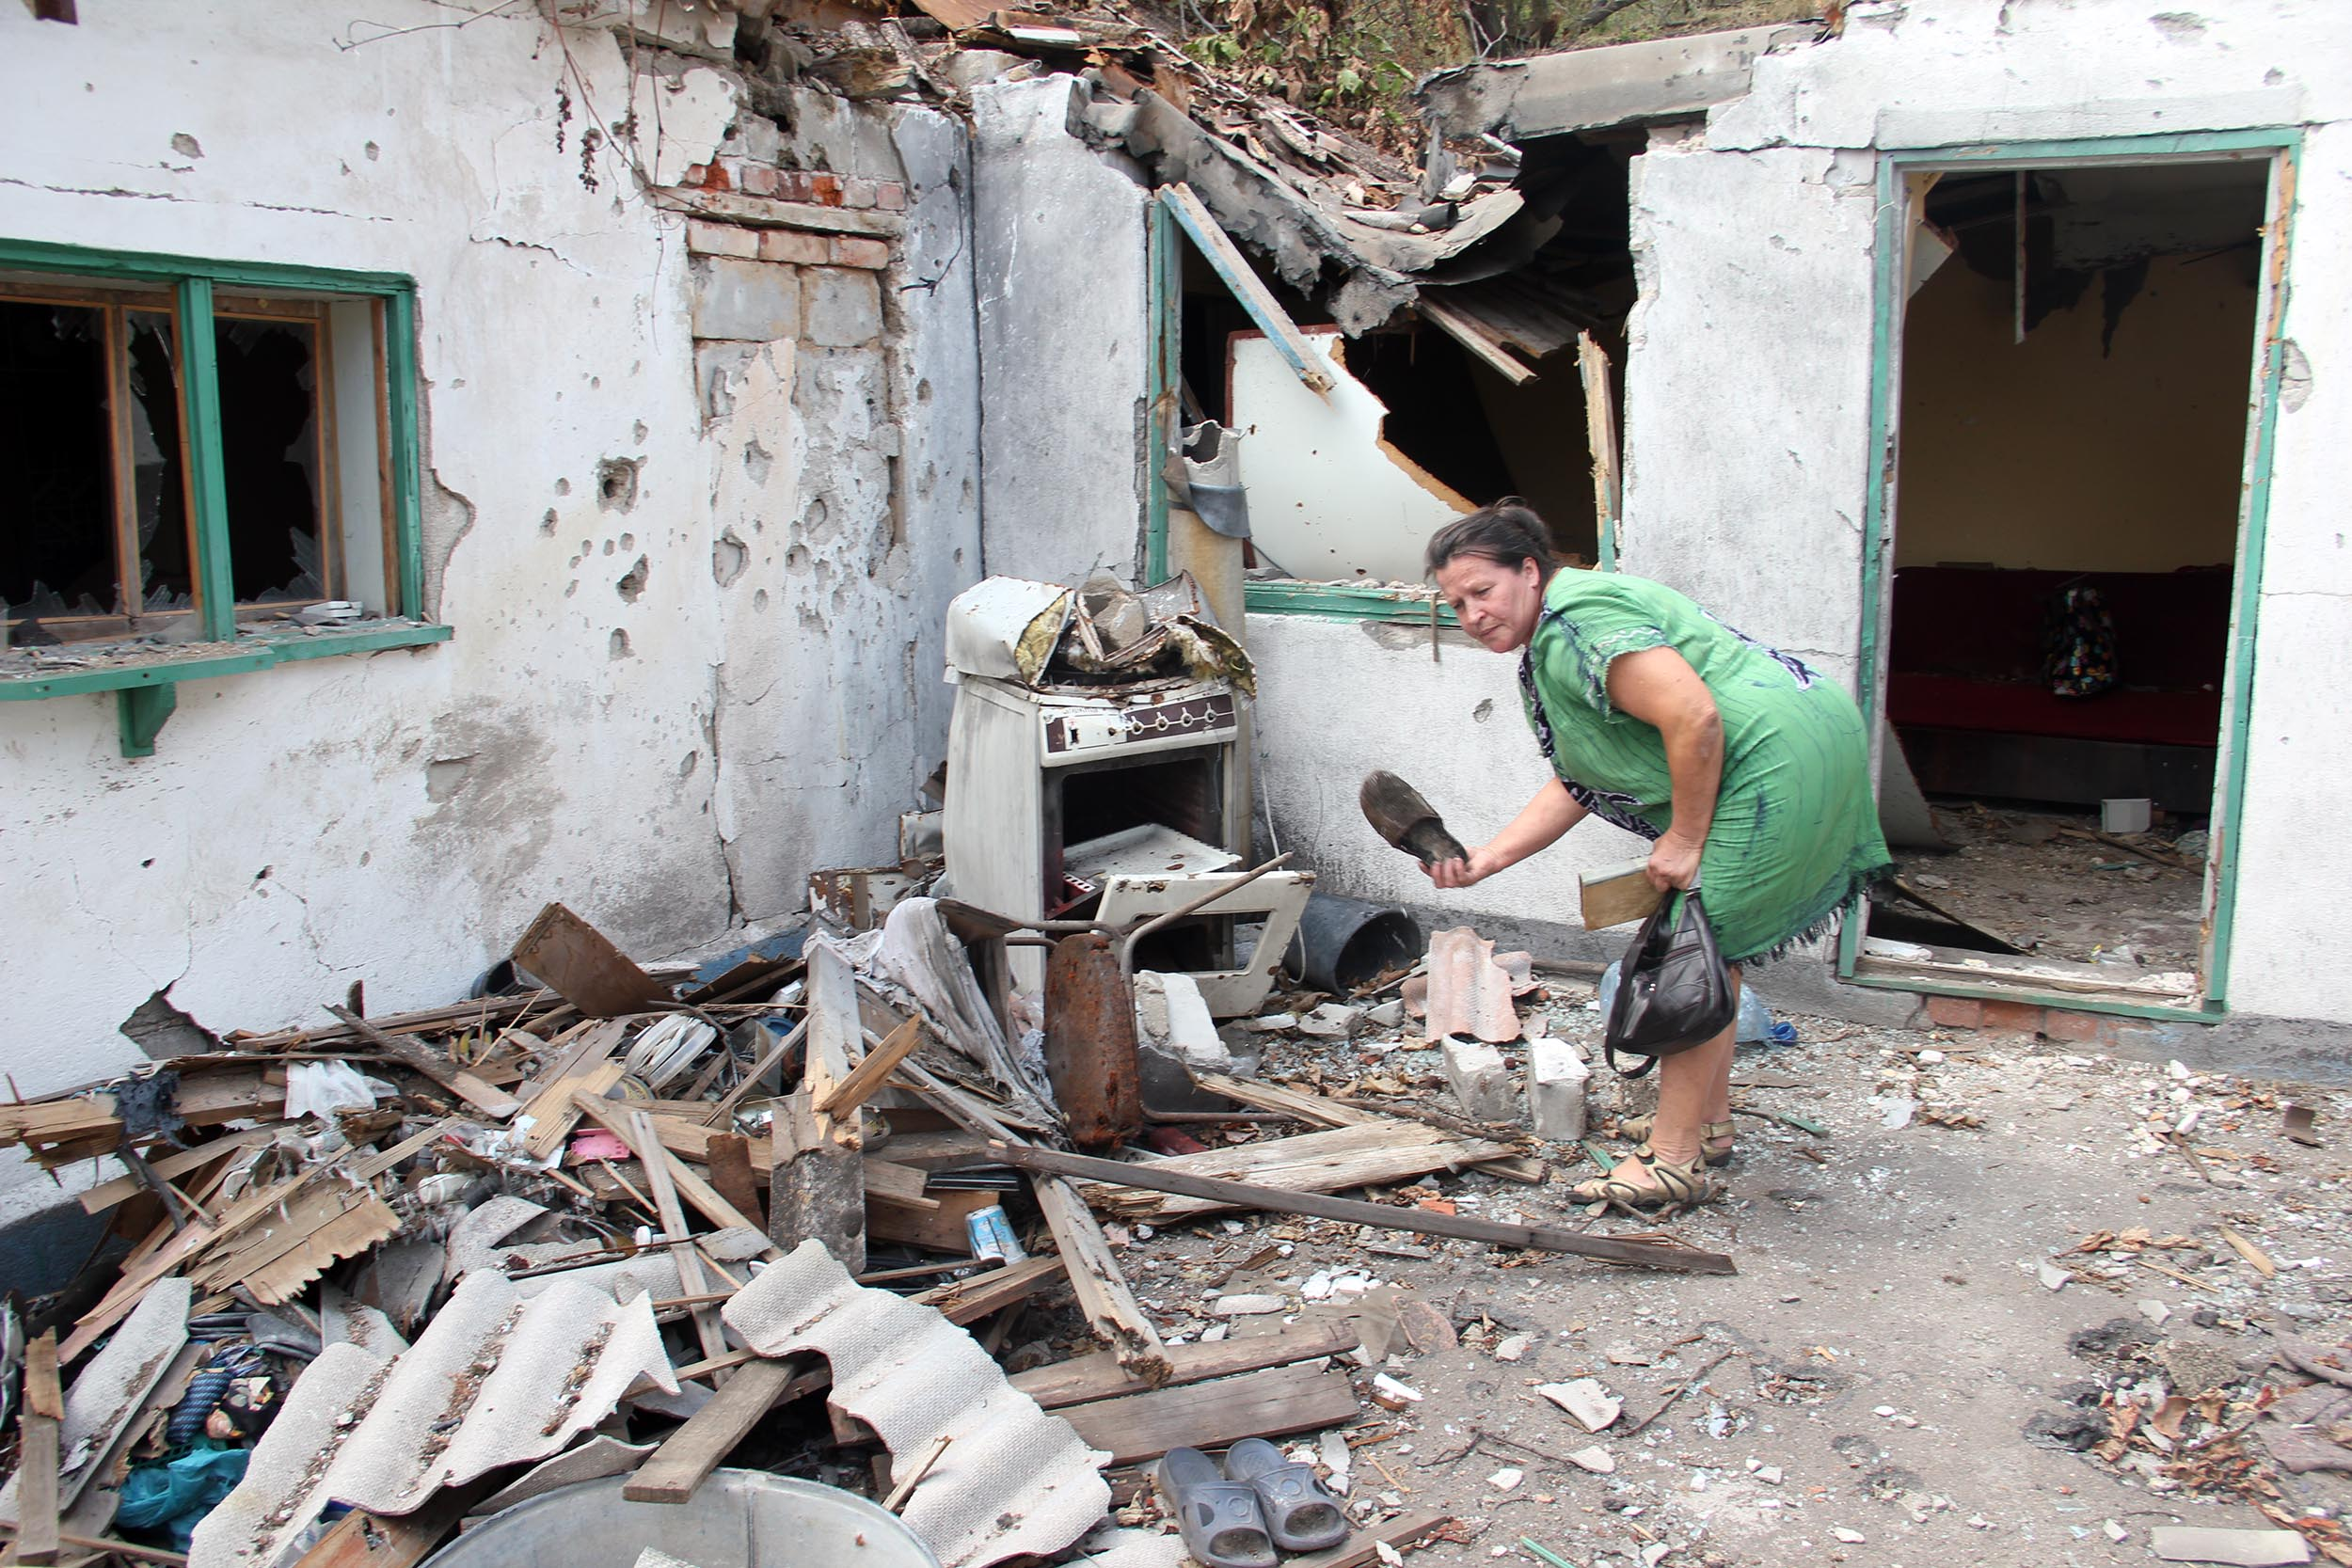 A displaced woman in Mariupol returned to her house on the line of contact to look at the damage done when it was shelled. She fled her home during the shelling, and came back to retrieve some possessions. Photo: UNHCR